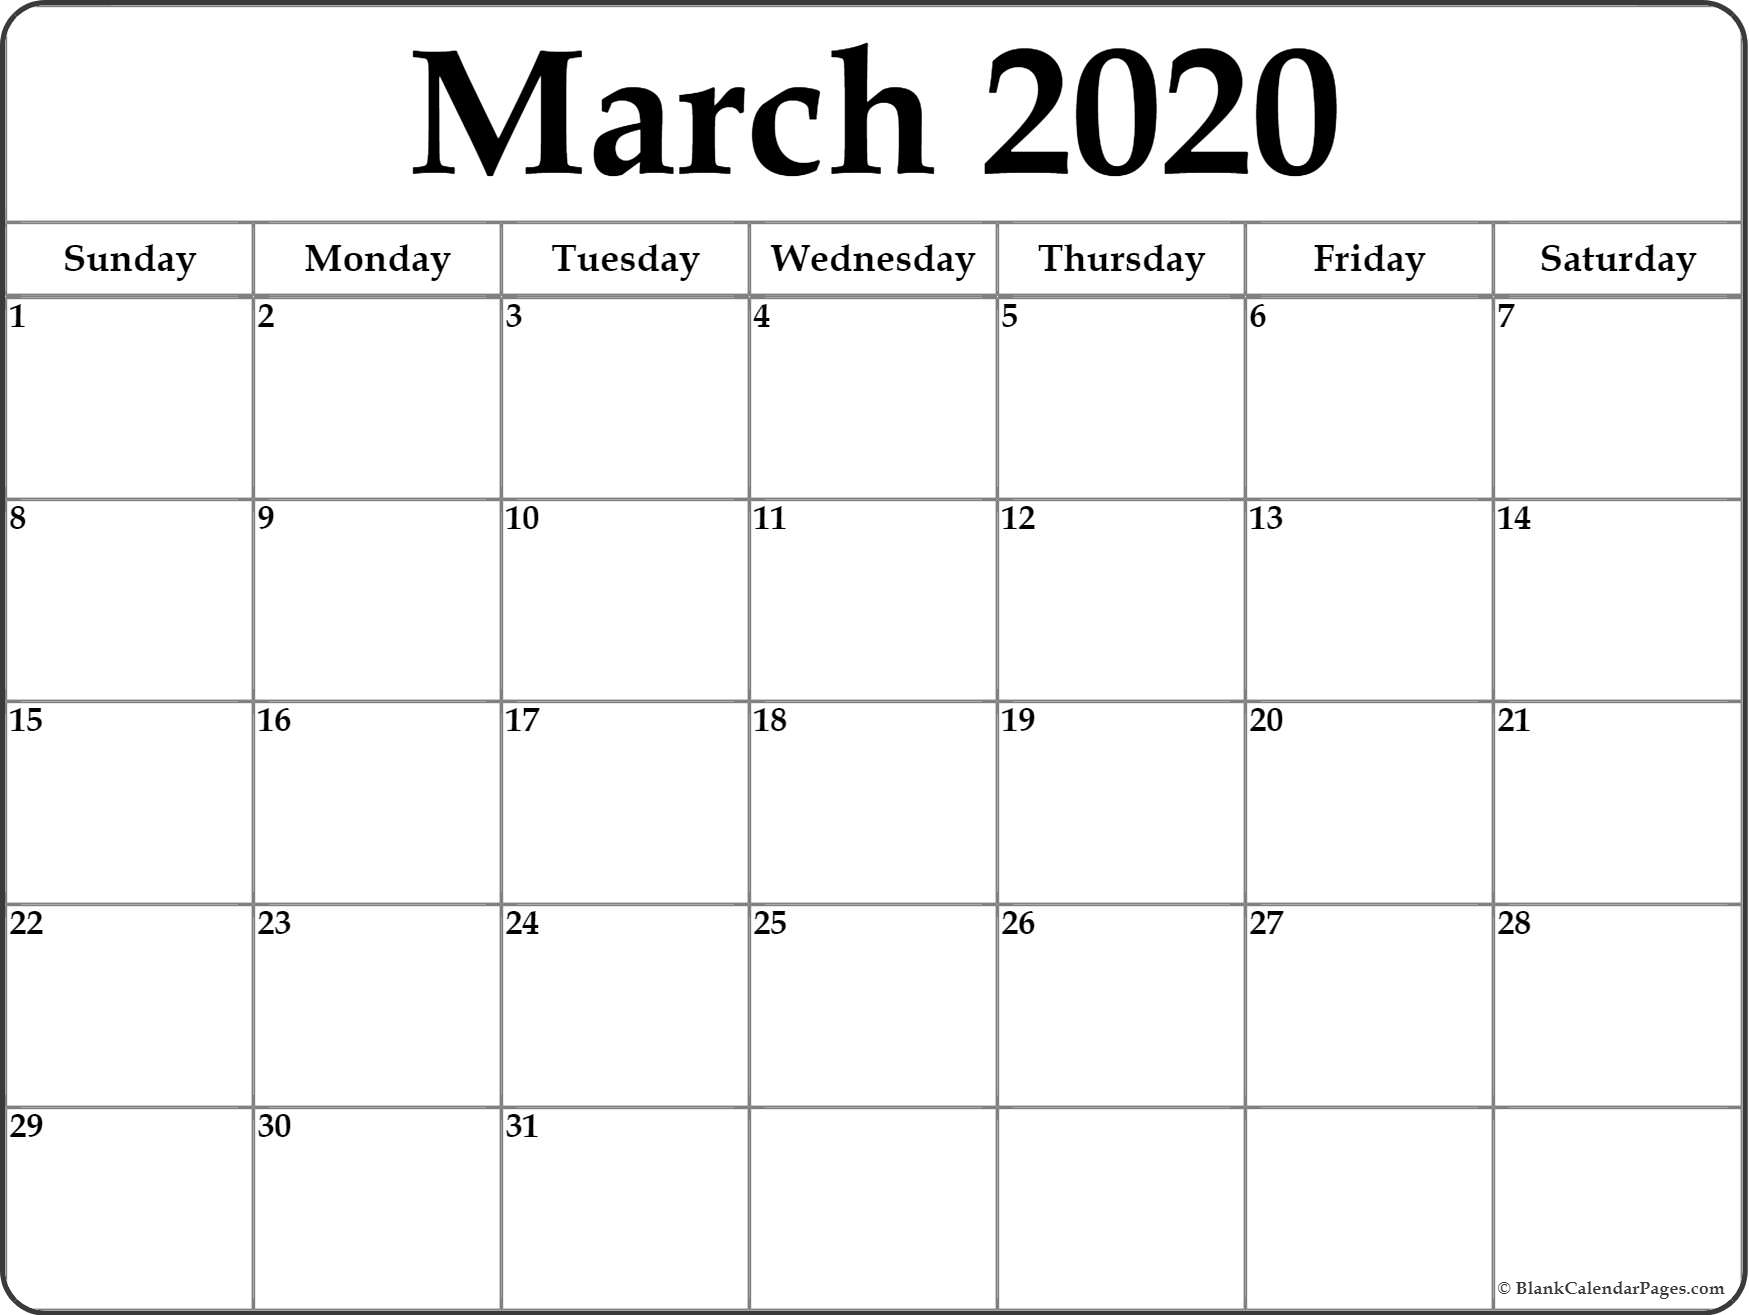 2020 Blank Calendar Printable - Wpa.wpart.co with regard to 2020 Monthly Fill In Calendars